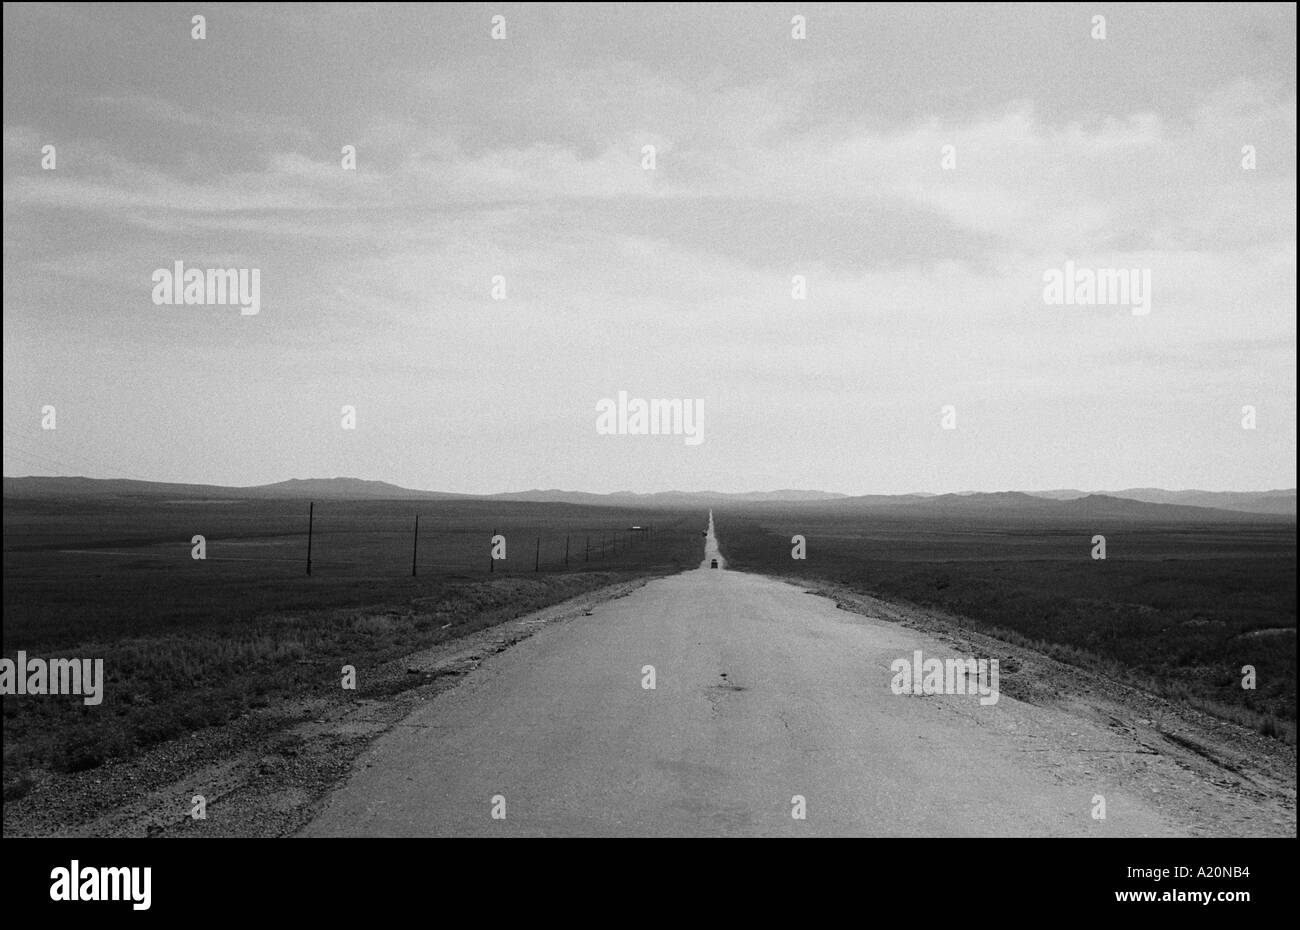 On the road on the steppes in Ovorkhangai district, Mongolia - Stock Image